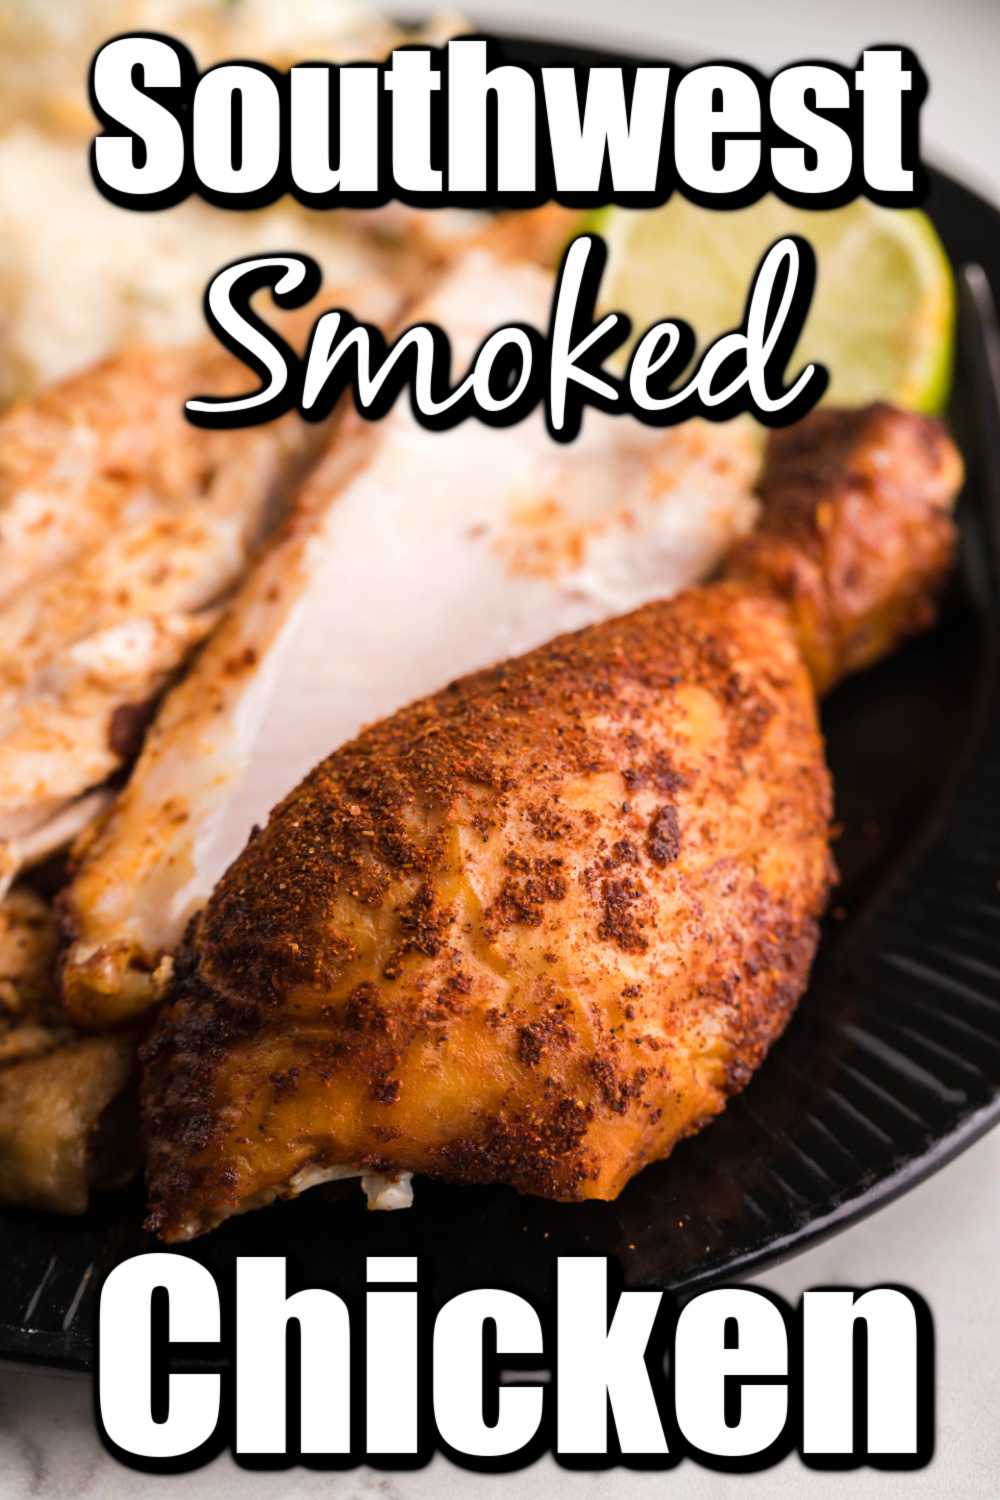 This fantastic whole smoked chicken is tender, juicy, and will have everyone coming back for seconds!